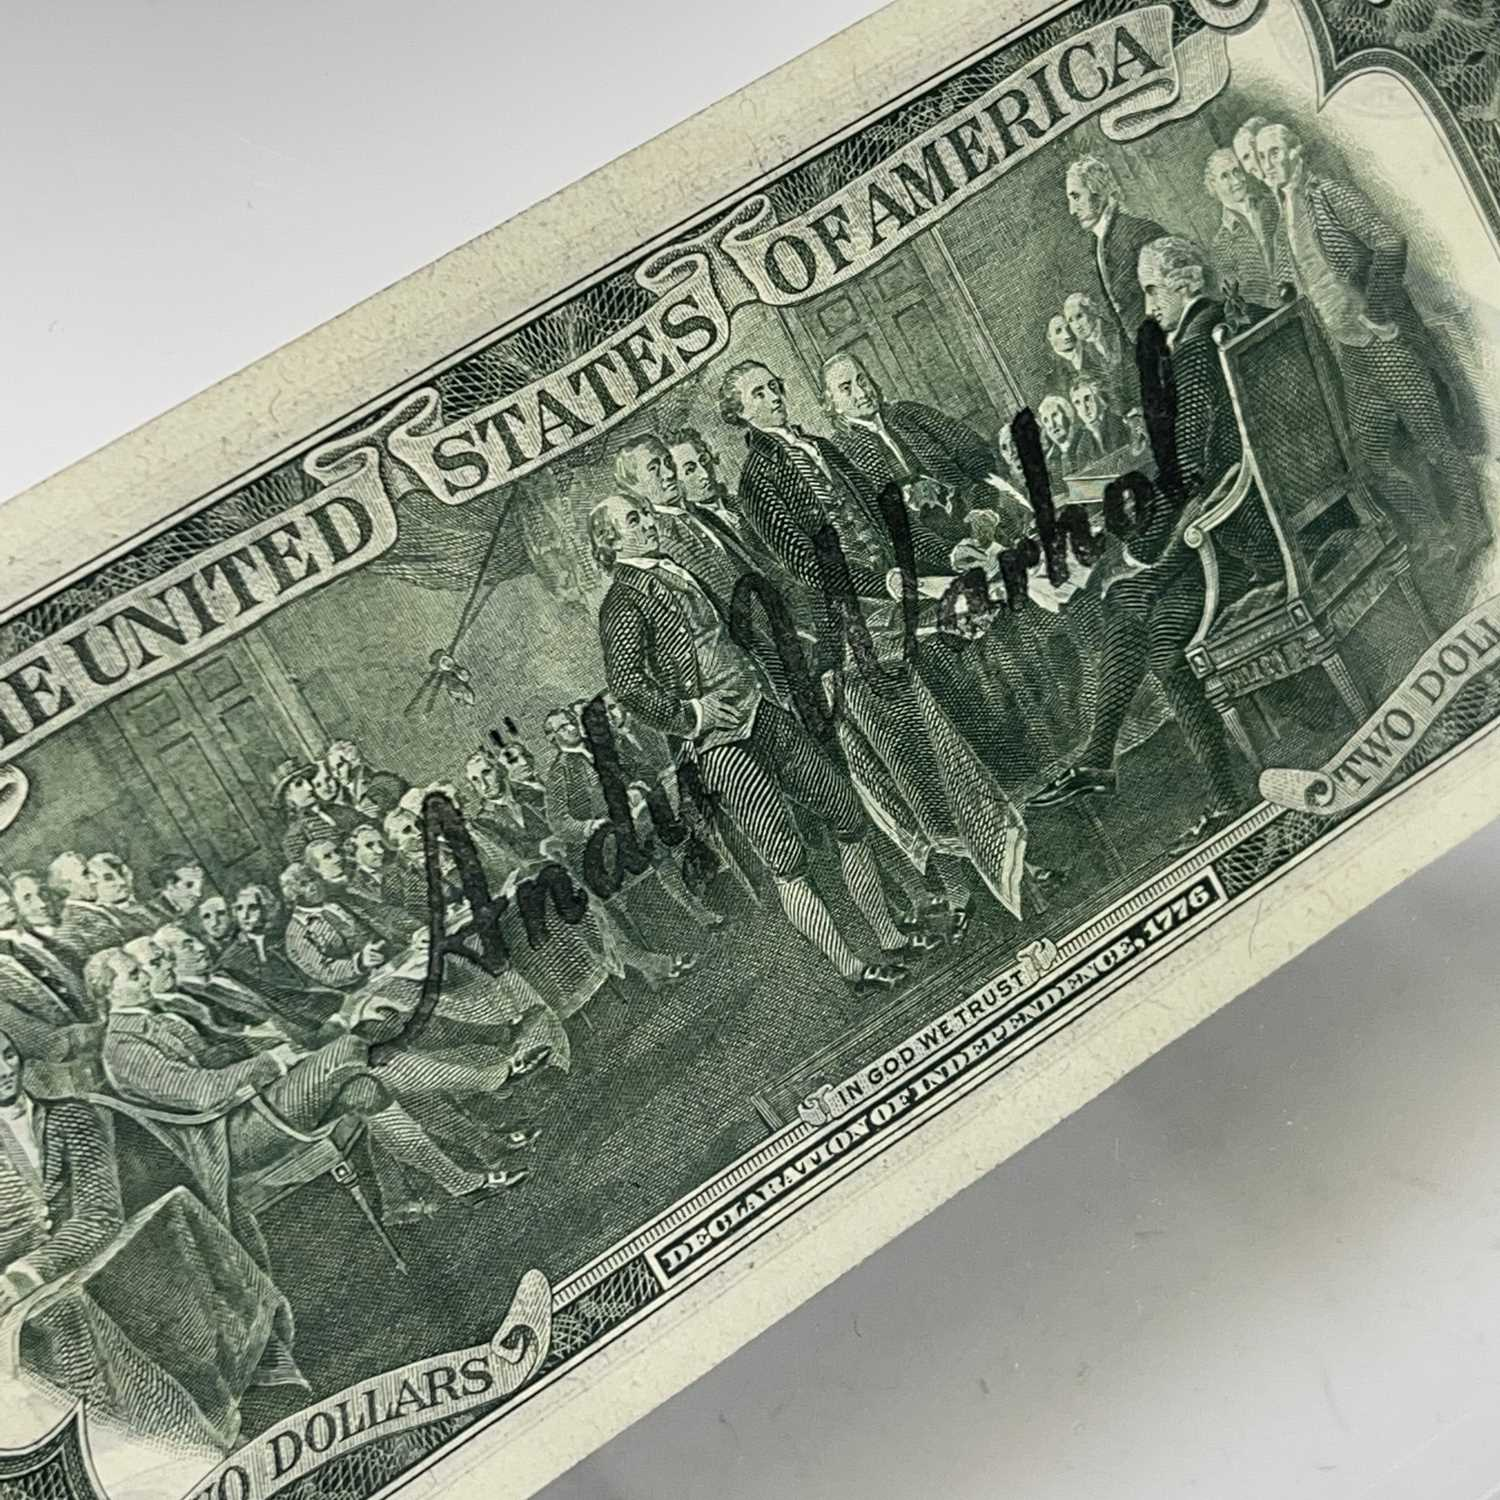 After Andy Warhol, a two-dollar banknote, bears signature, together with accompanying paperwork. - Image 5 of 10